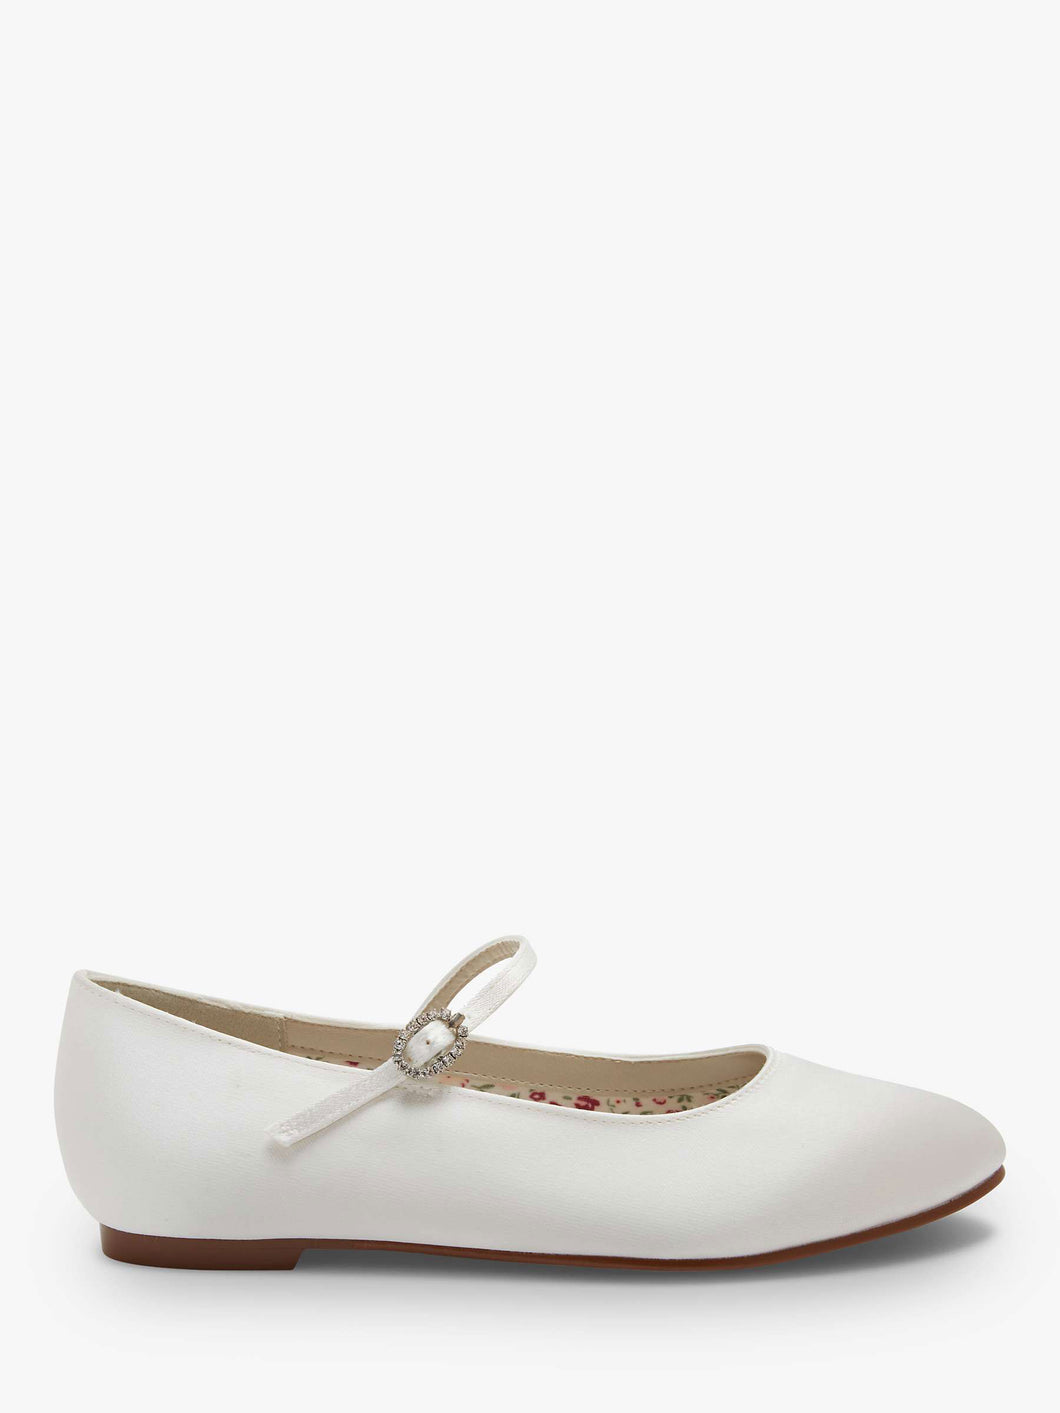 Rainbow Club Binx Shoes, White